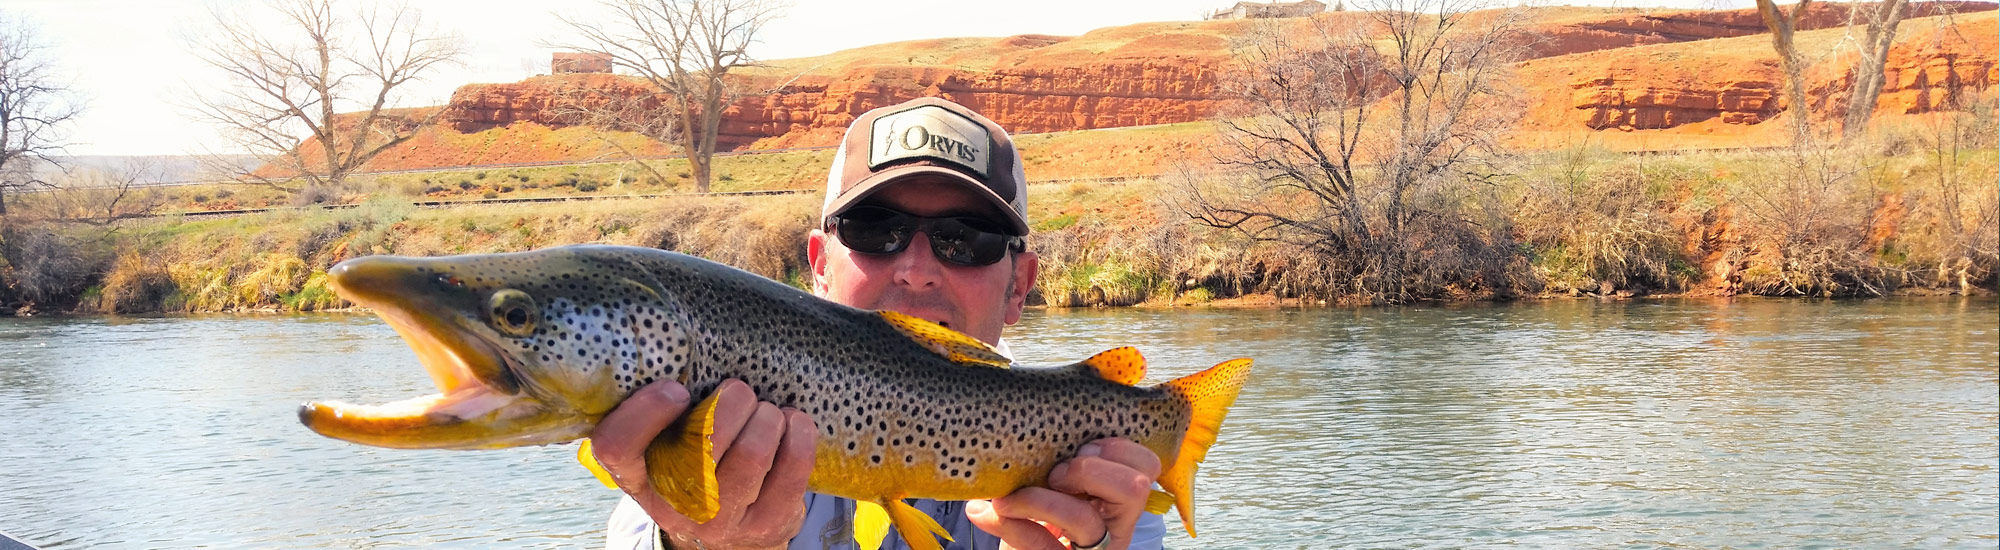 Bighorn river fishing report four seasons anglers for Bighorn river fishing report